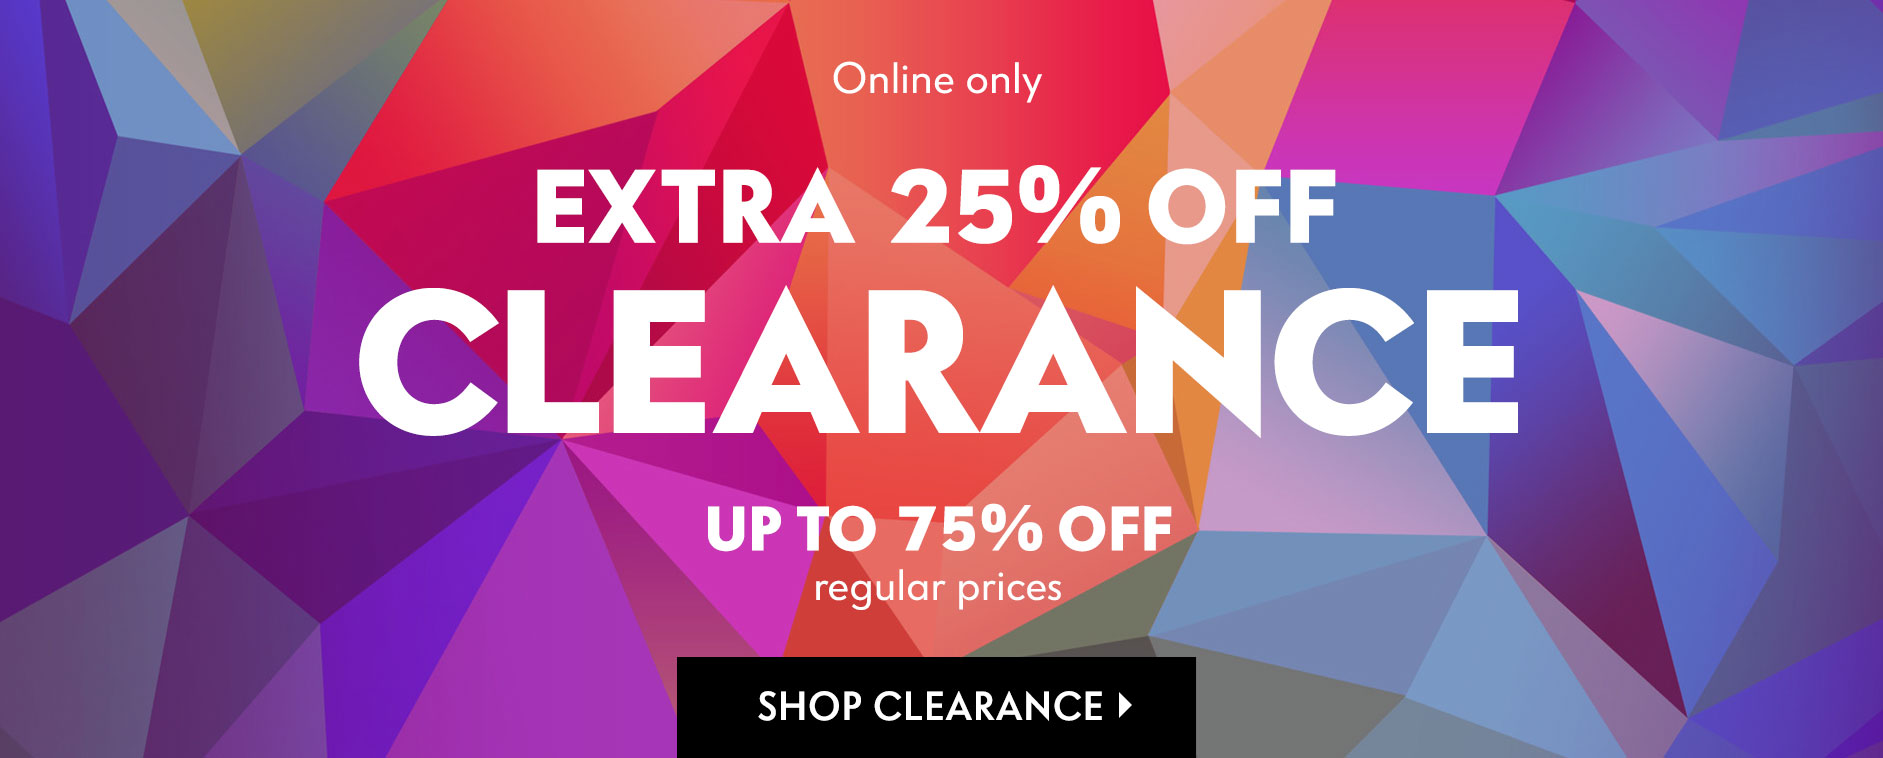 Online only: Extra 25% Off Clearance - Up to 75% off regular prices